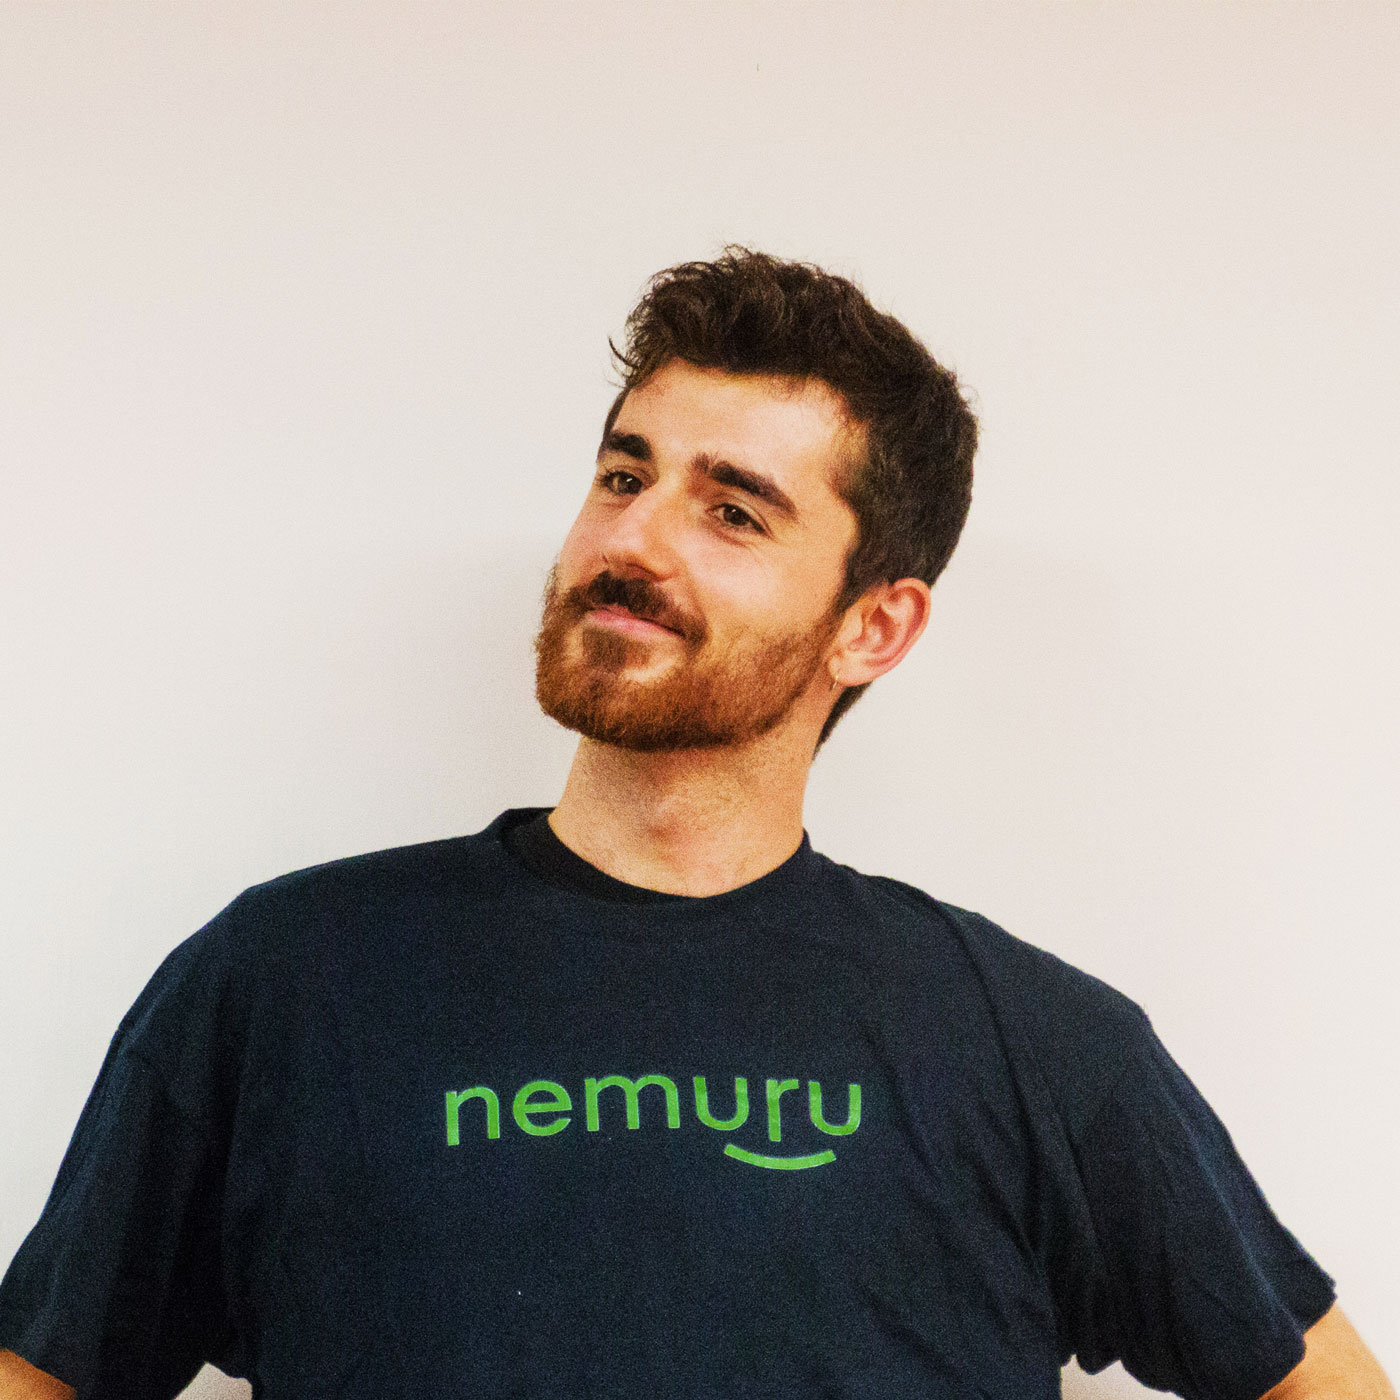 David Alós es el backend developer de Nemuru, tu herramienta digital de créditos flexibles